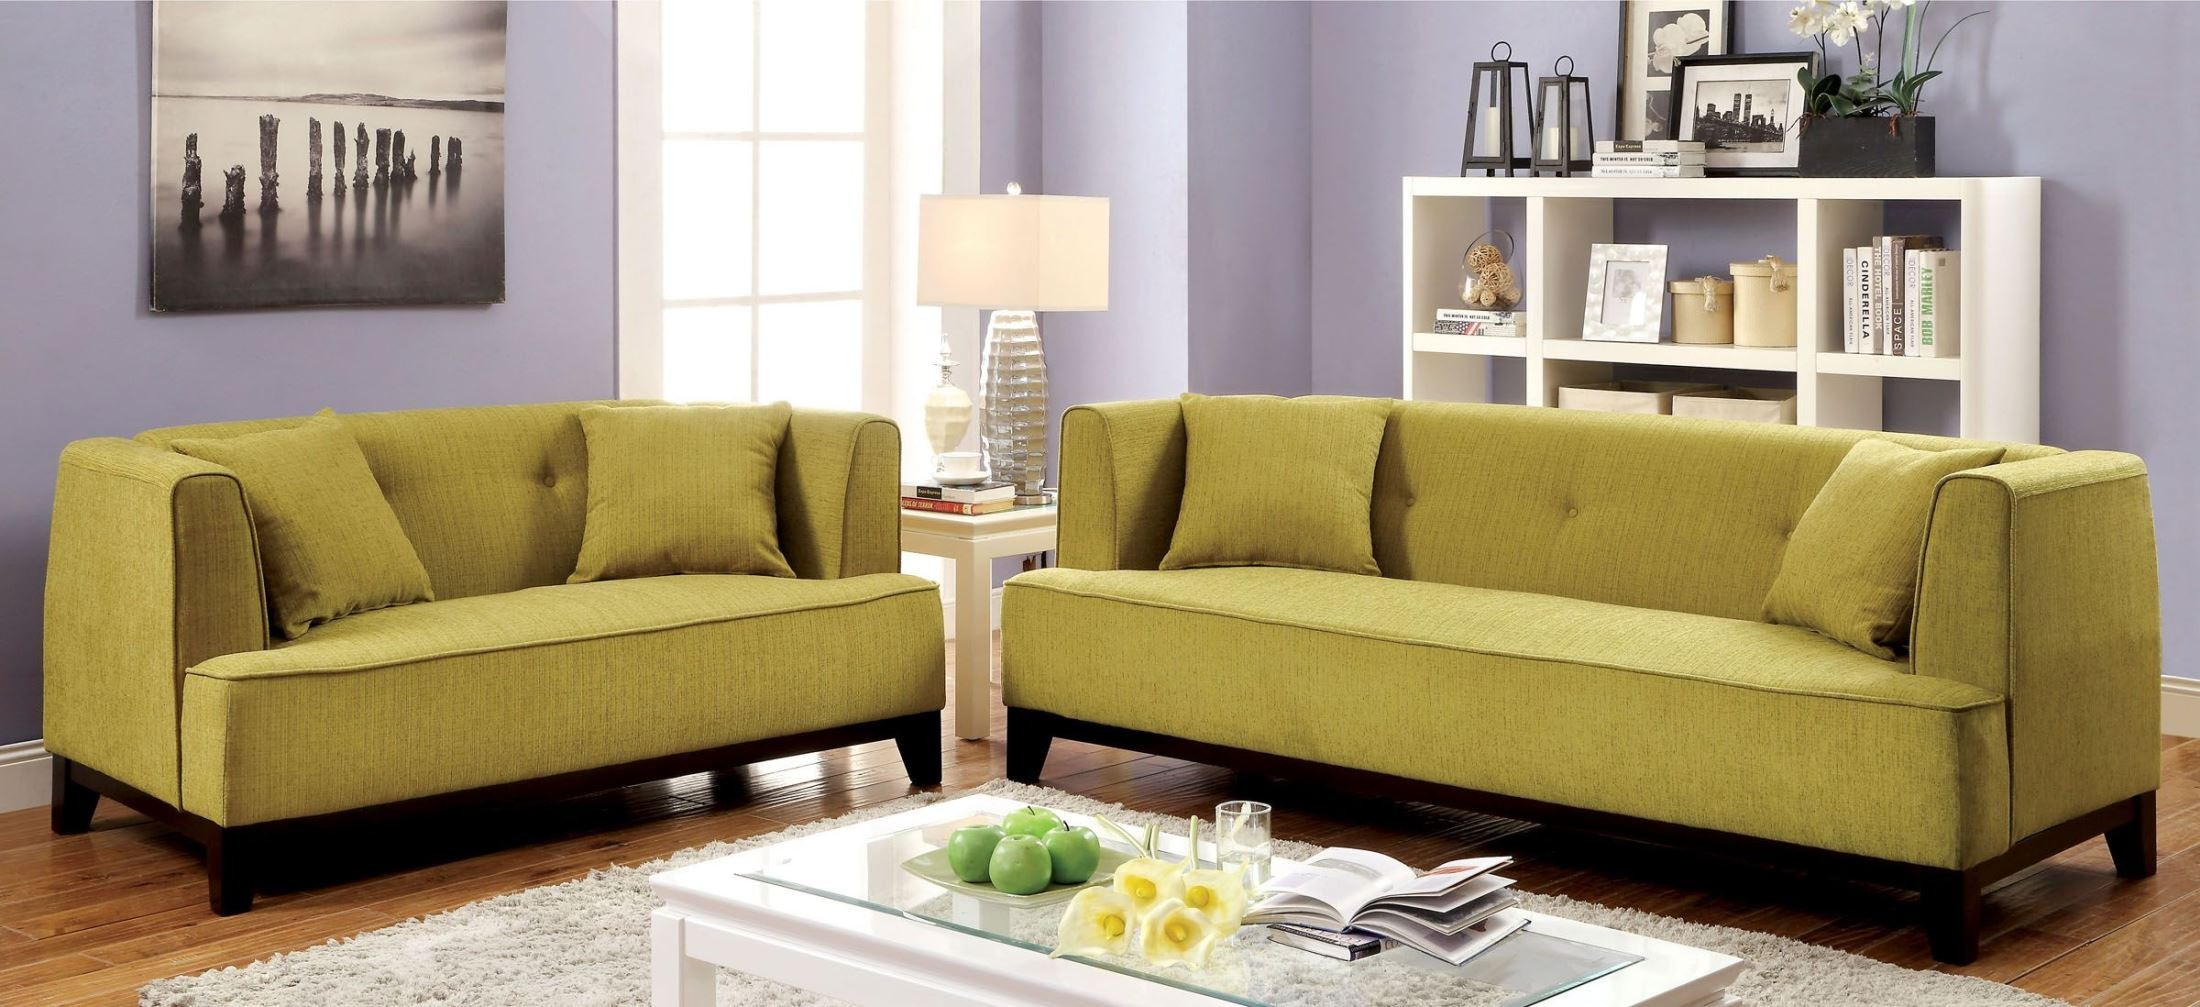 Sofia lemongrass living room set from furniture of america for Furniture of america customer service